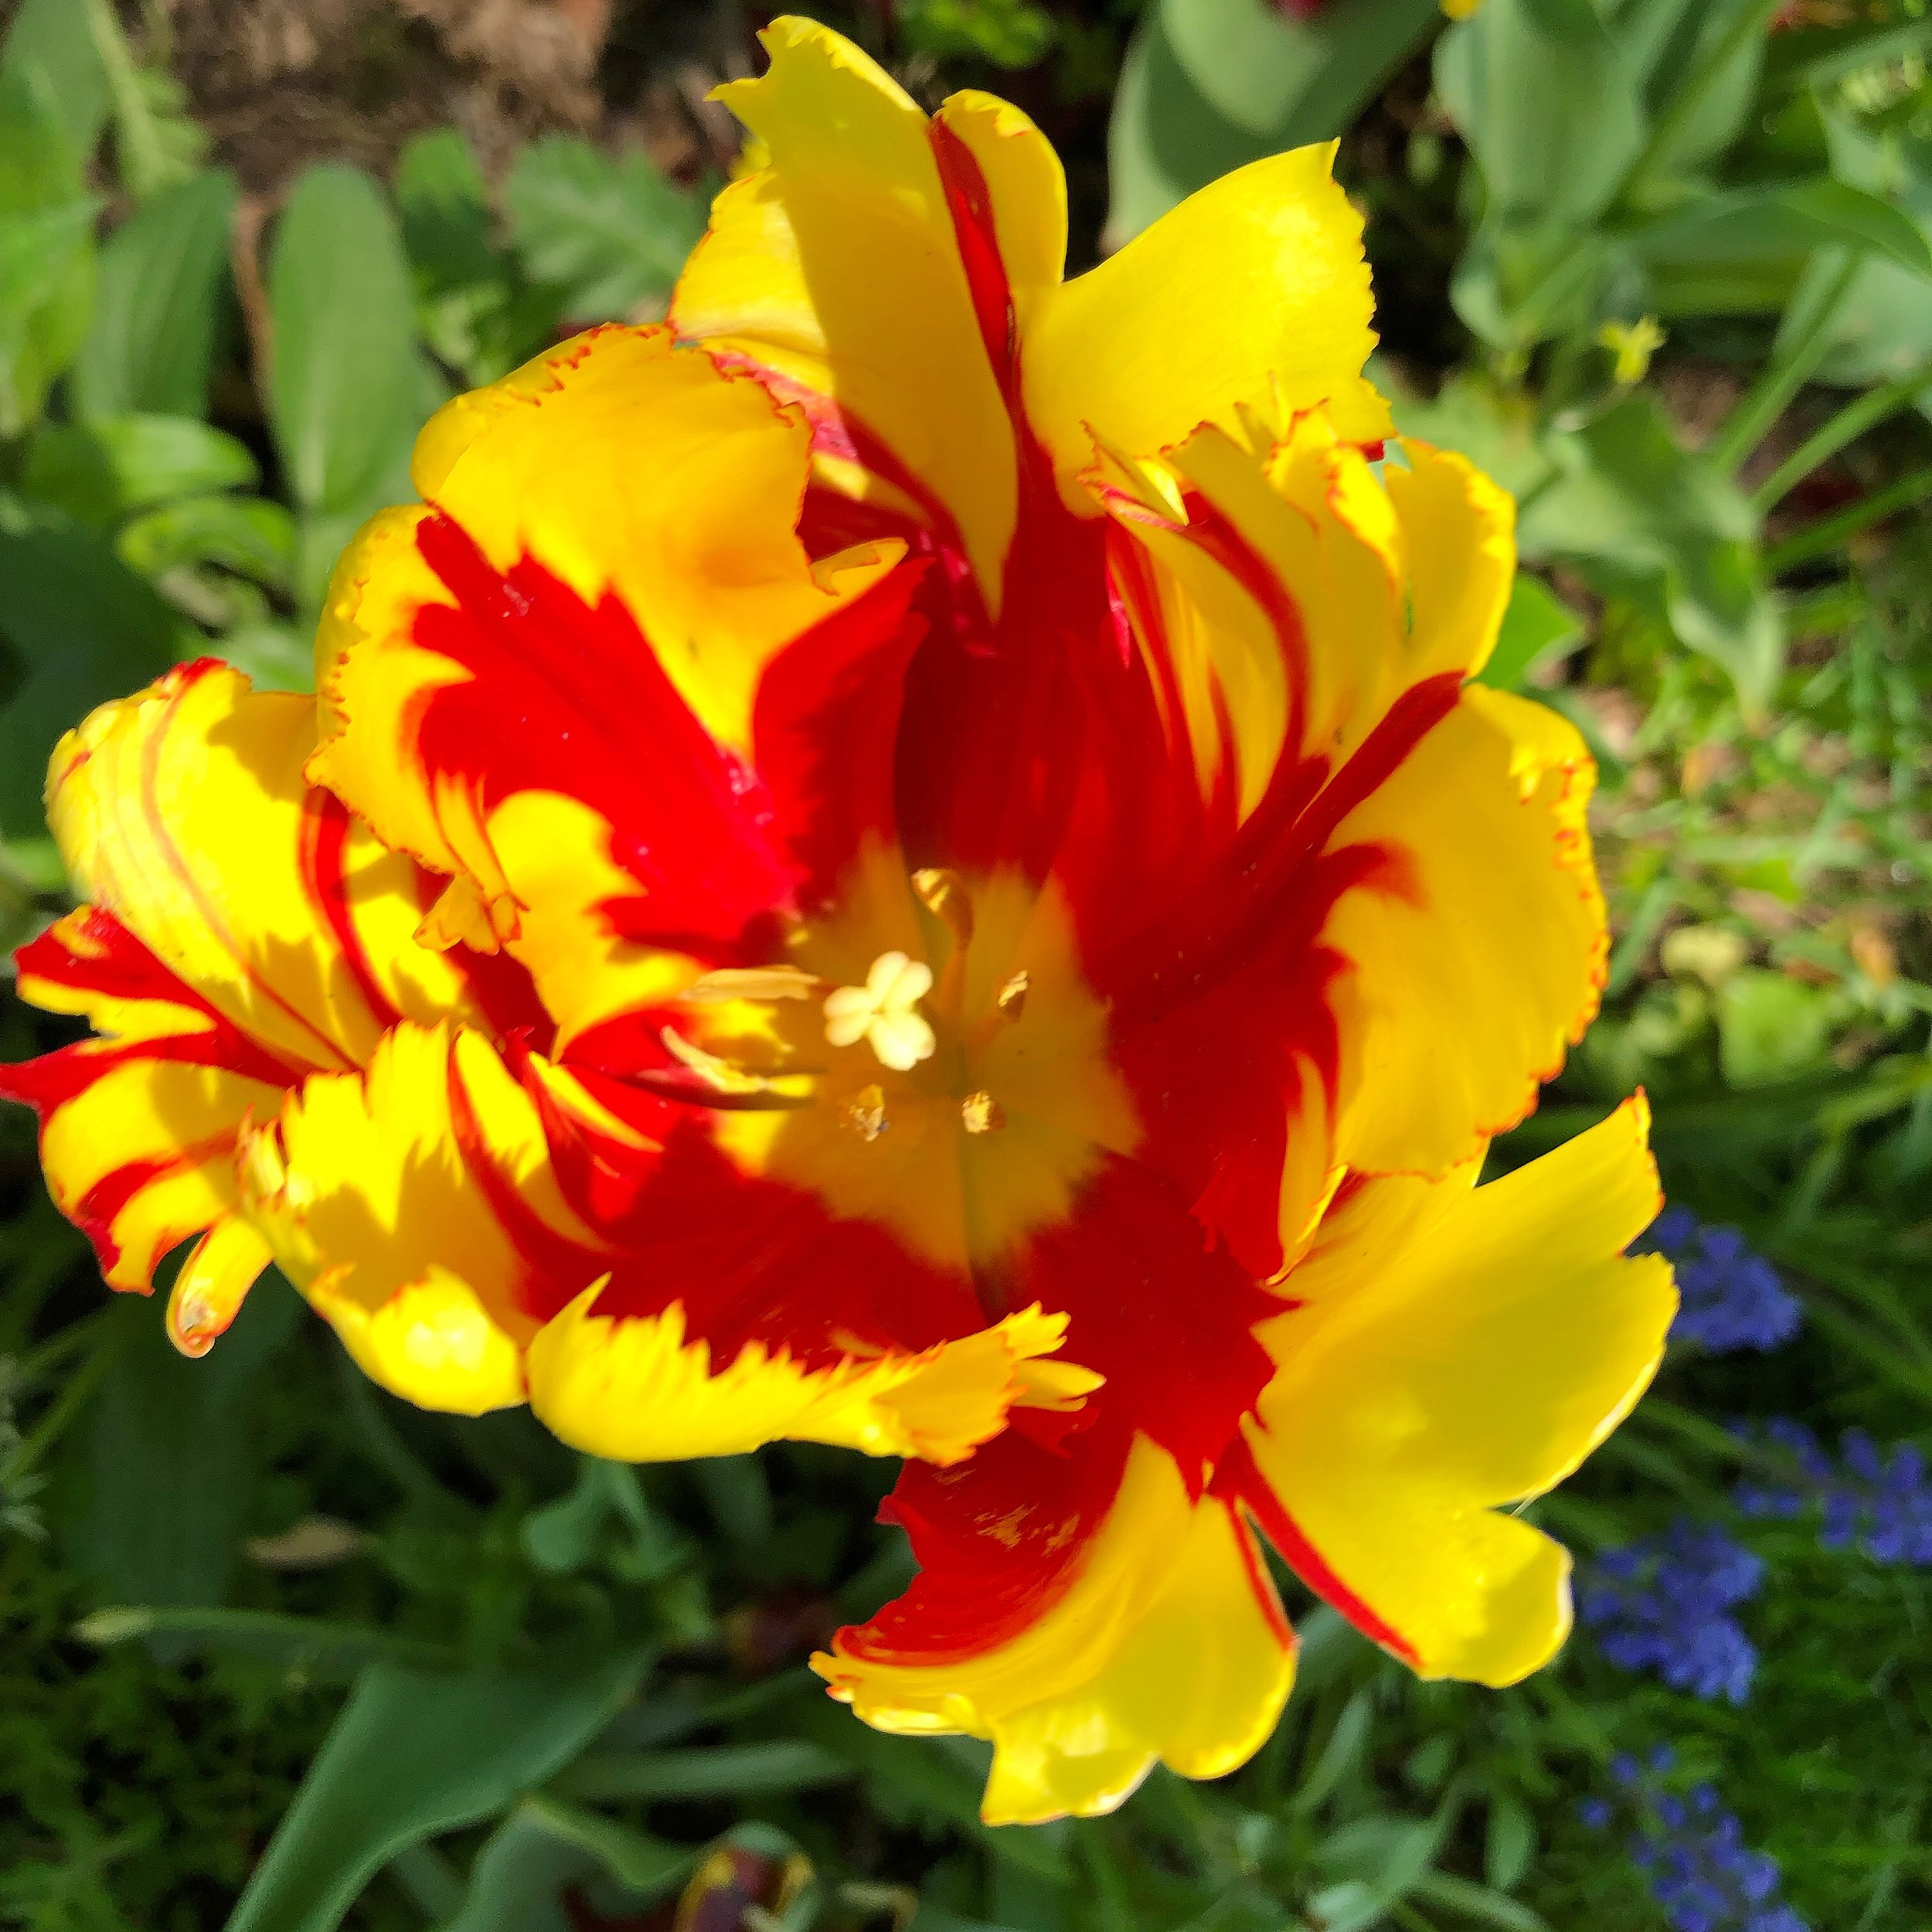 Ronald McDonald parrot tulips are where its at!